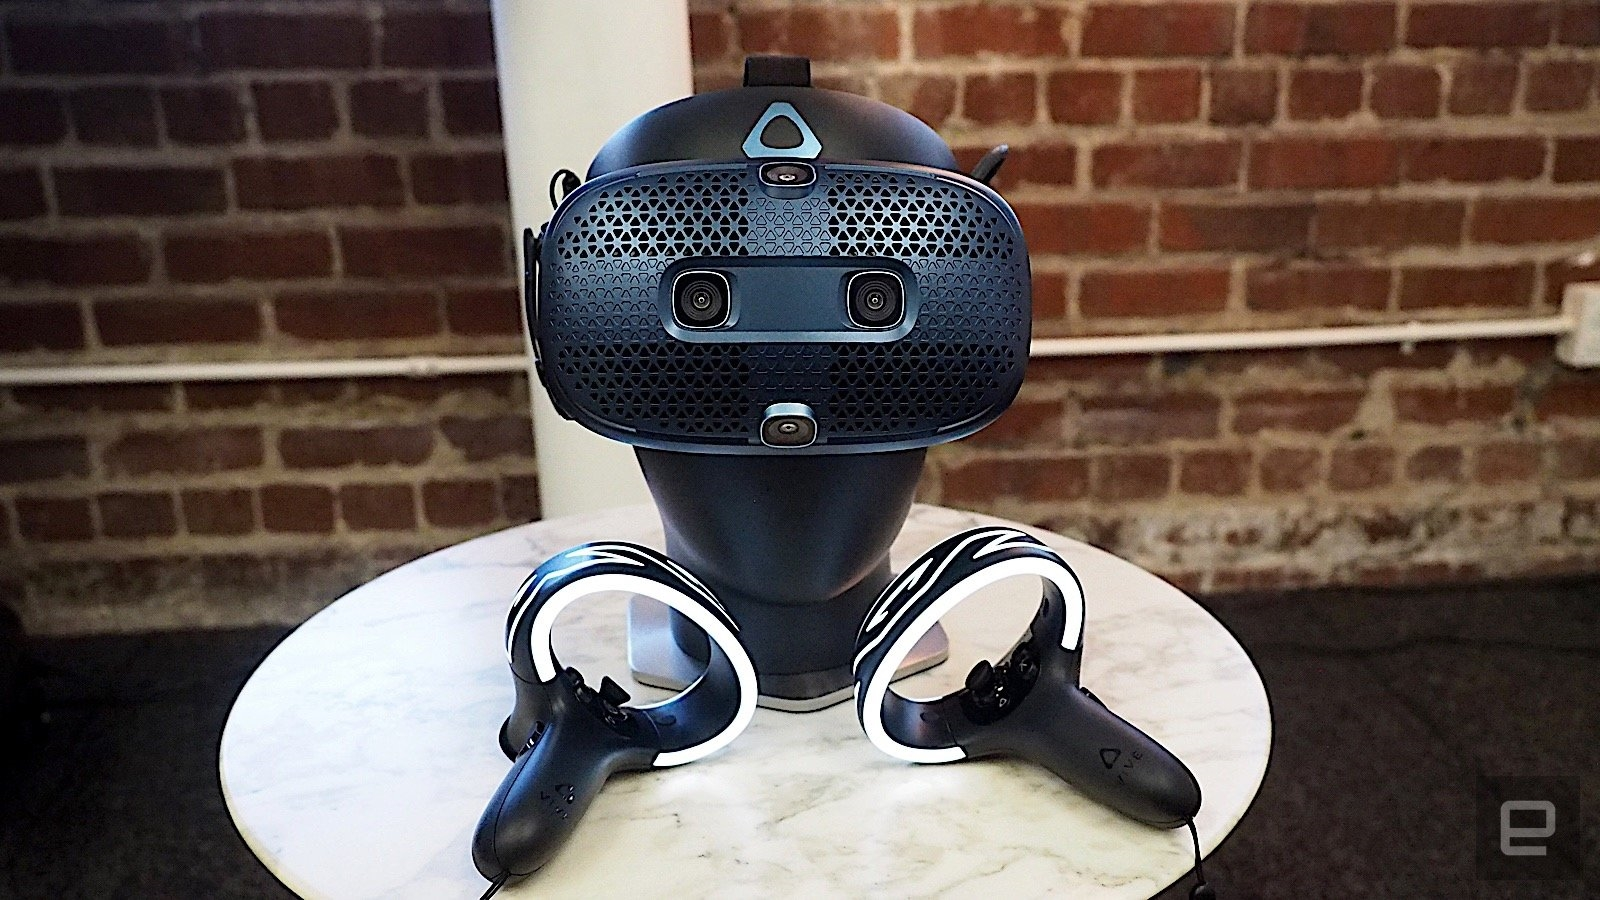 HTC Vive Cosmos hands-on: VR never looked so good | DeviceDaily.com